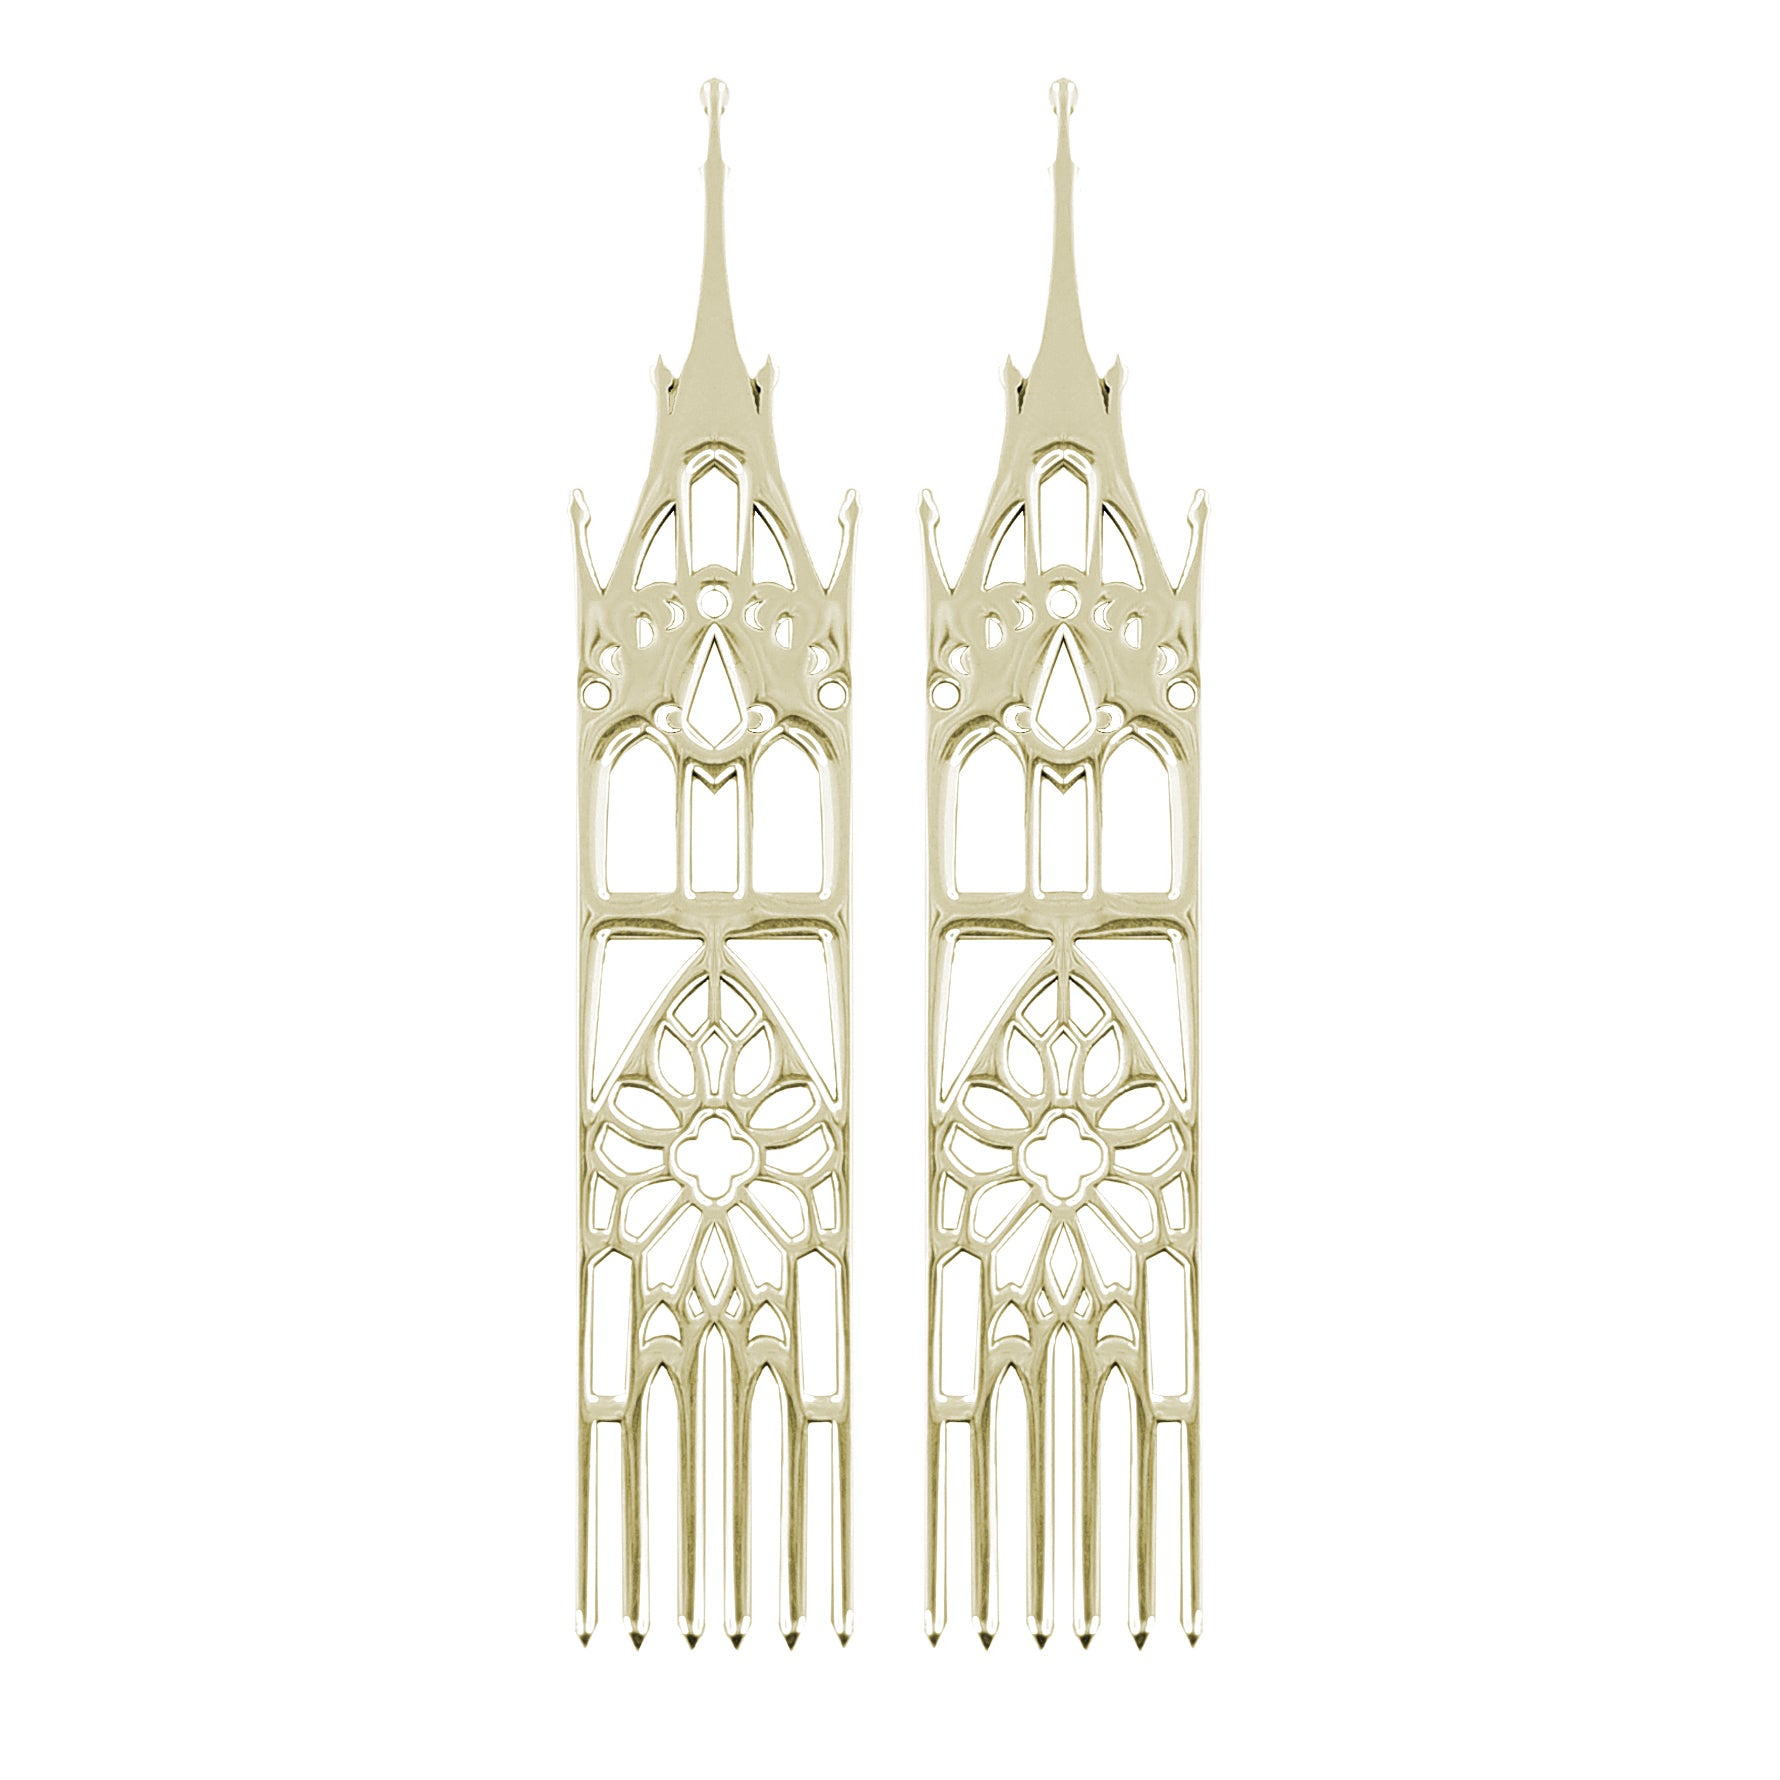 14K Yellow Gold Temple Earrings-Earrings-Inchoo Bijoux-Inchoo Bijoux